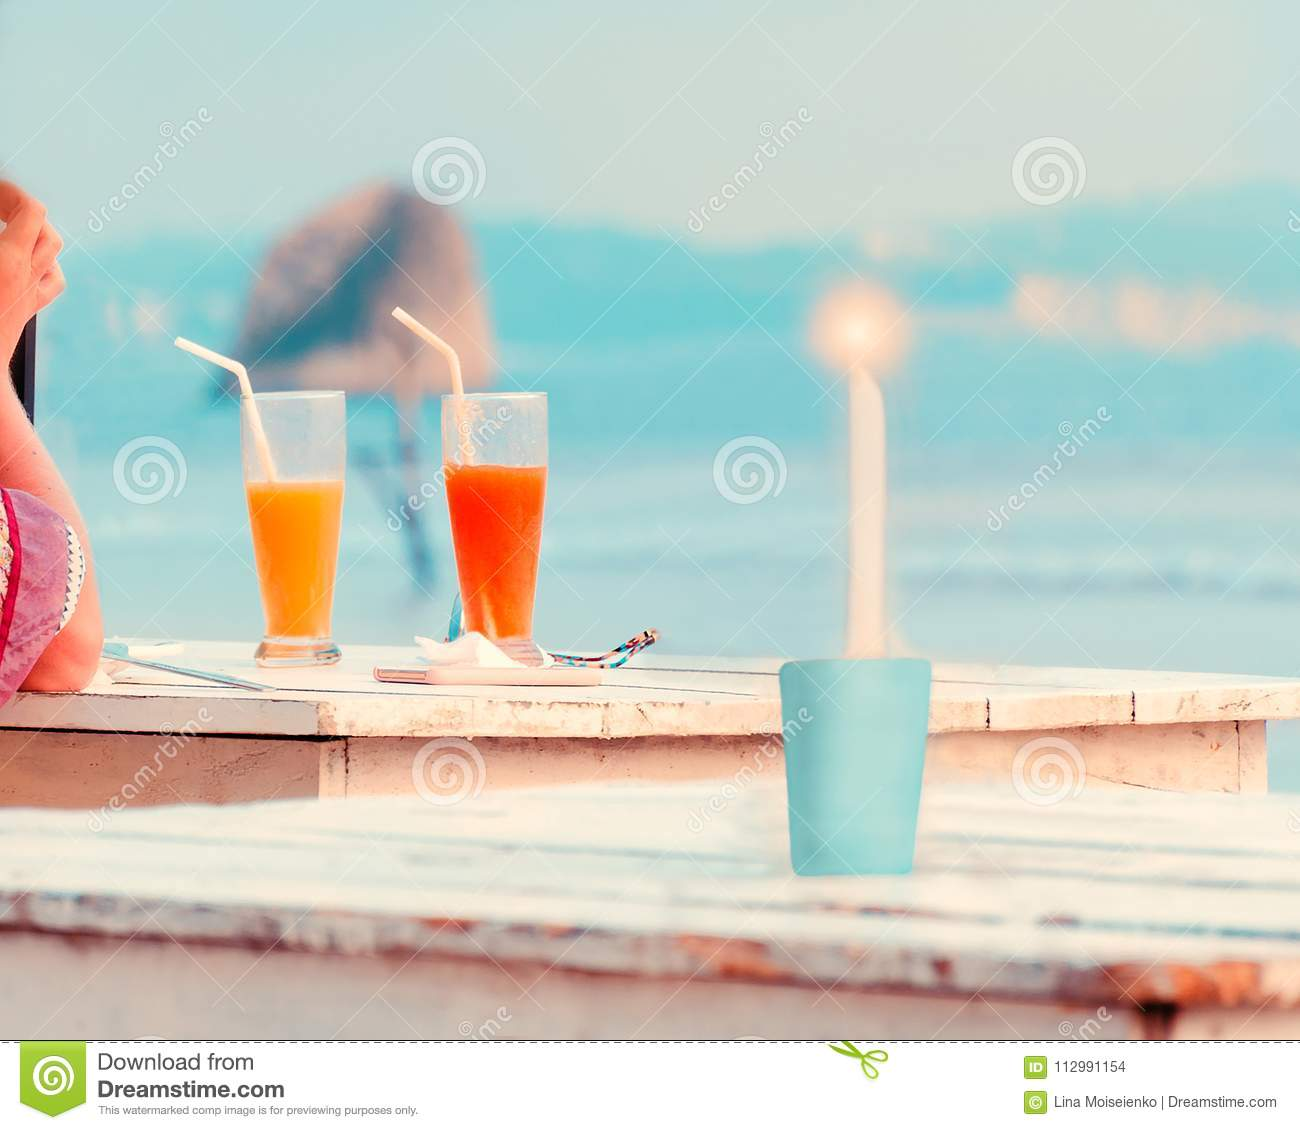 Woman hand , two glasses with fresh fruit juices, burning candle on wooden table in cafe on the beach.